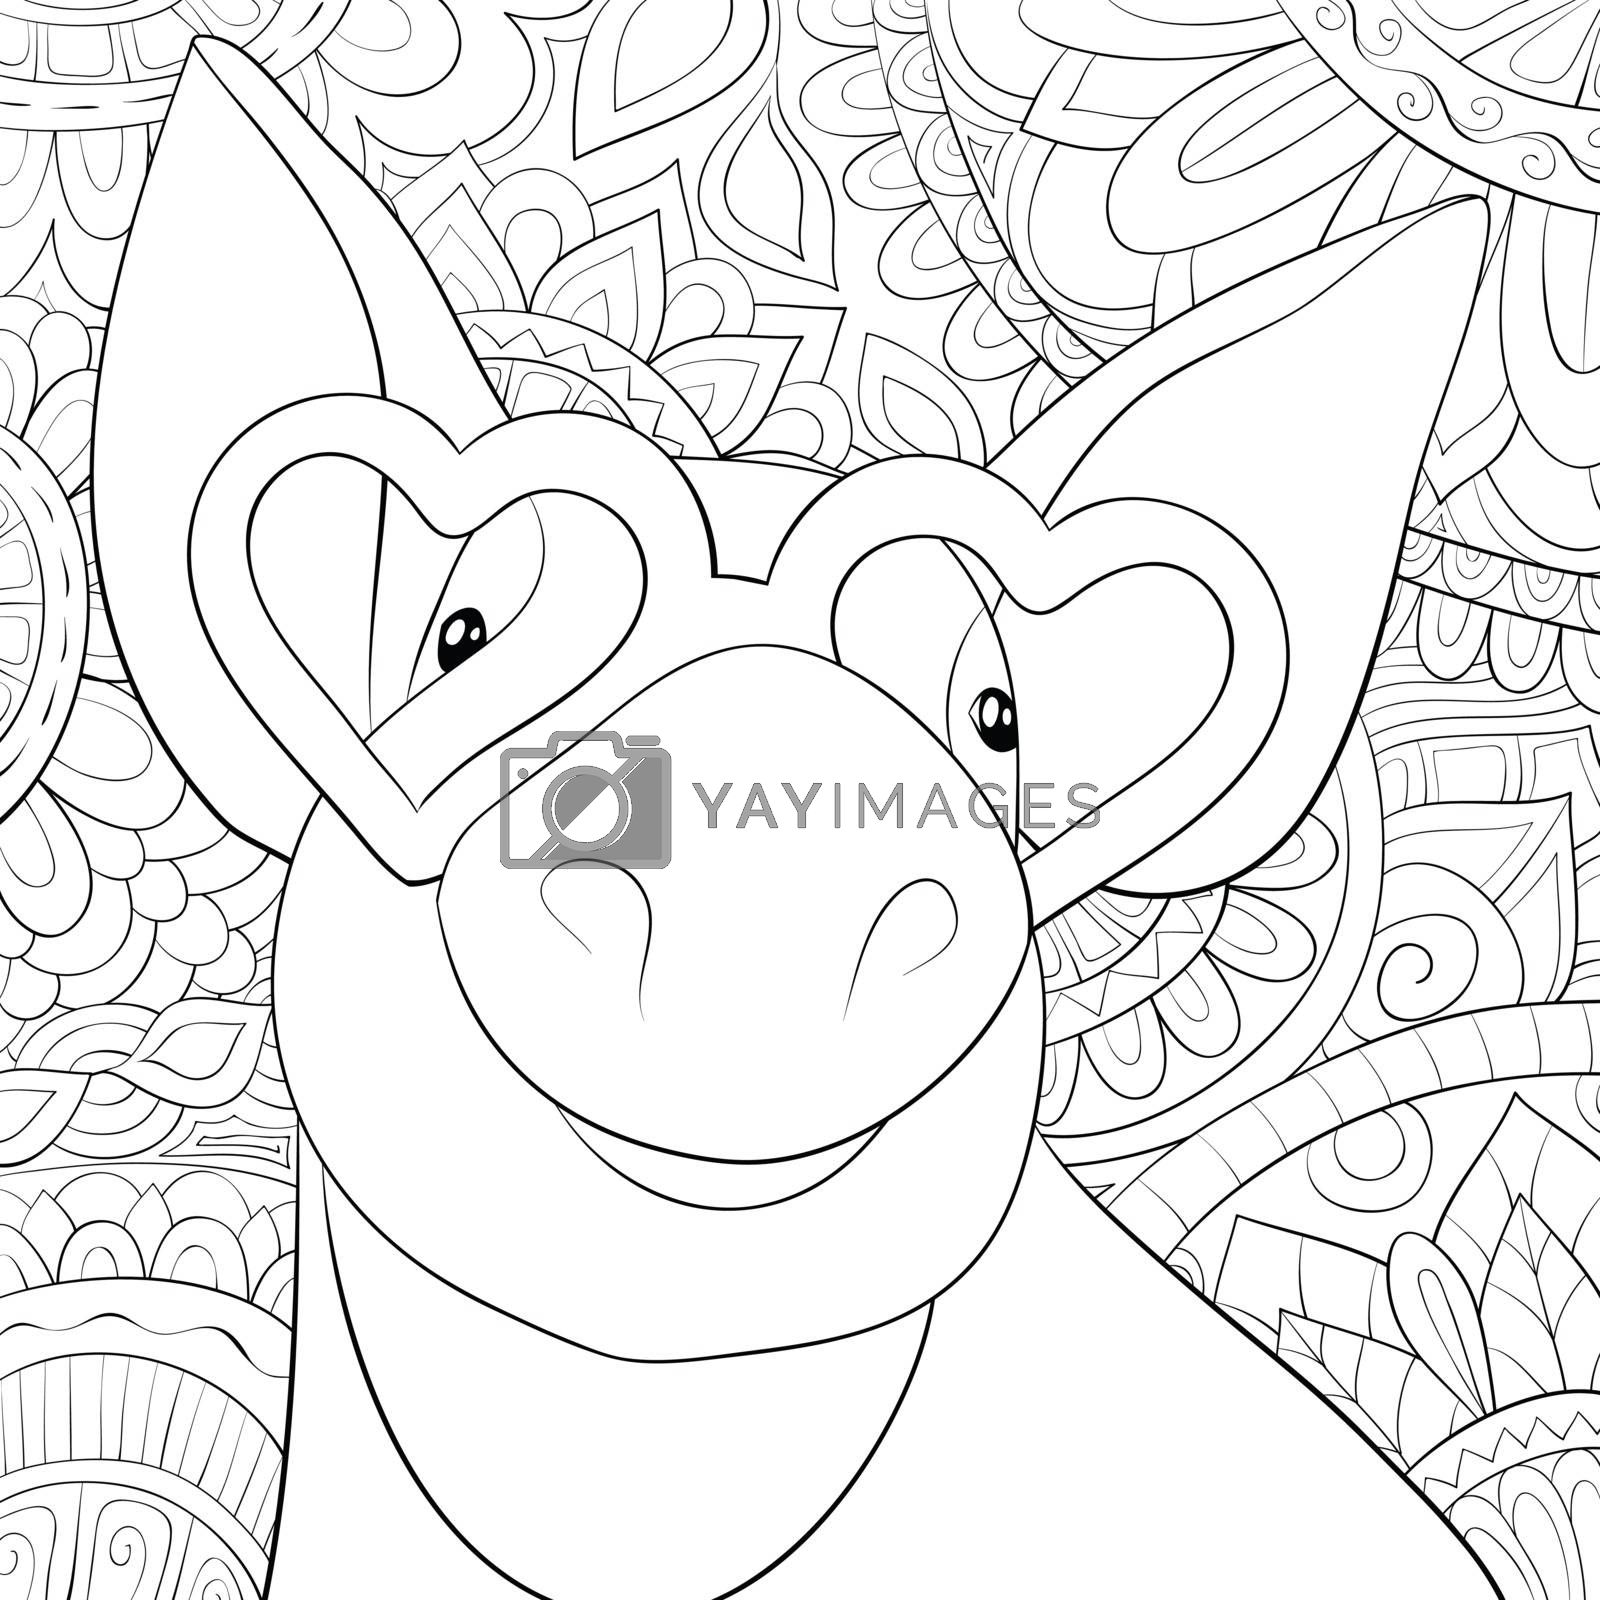 Adult coloring book,page a cute pig wearing sunglasses on the ab by Nonuzza